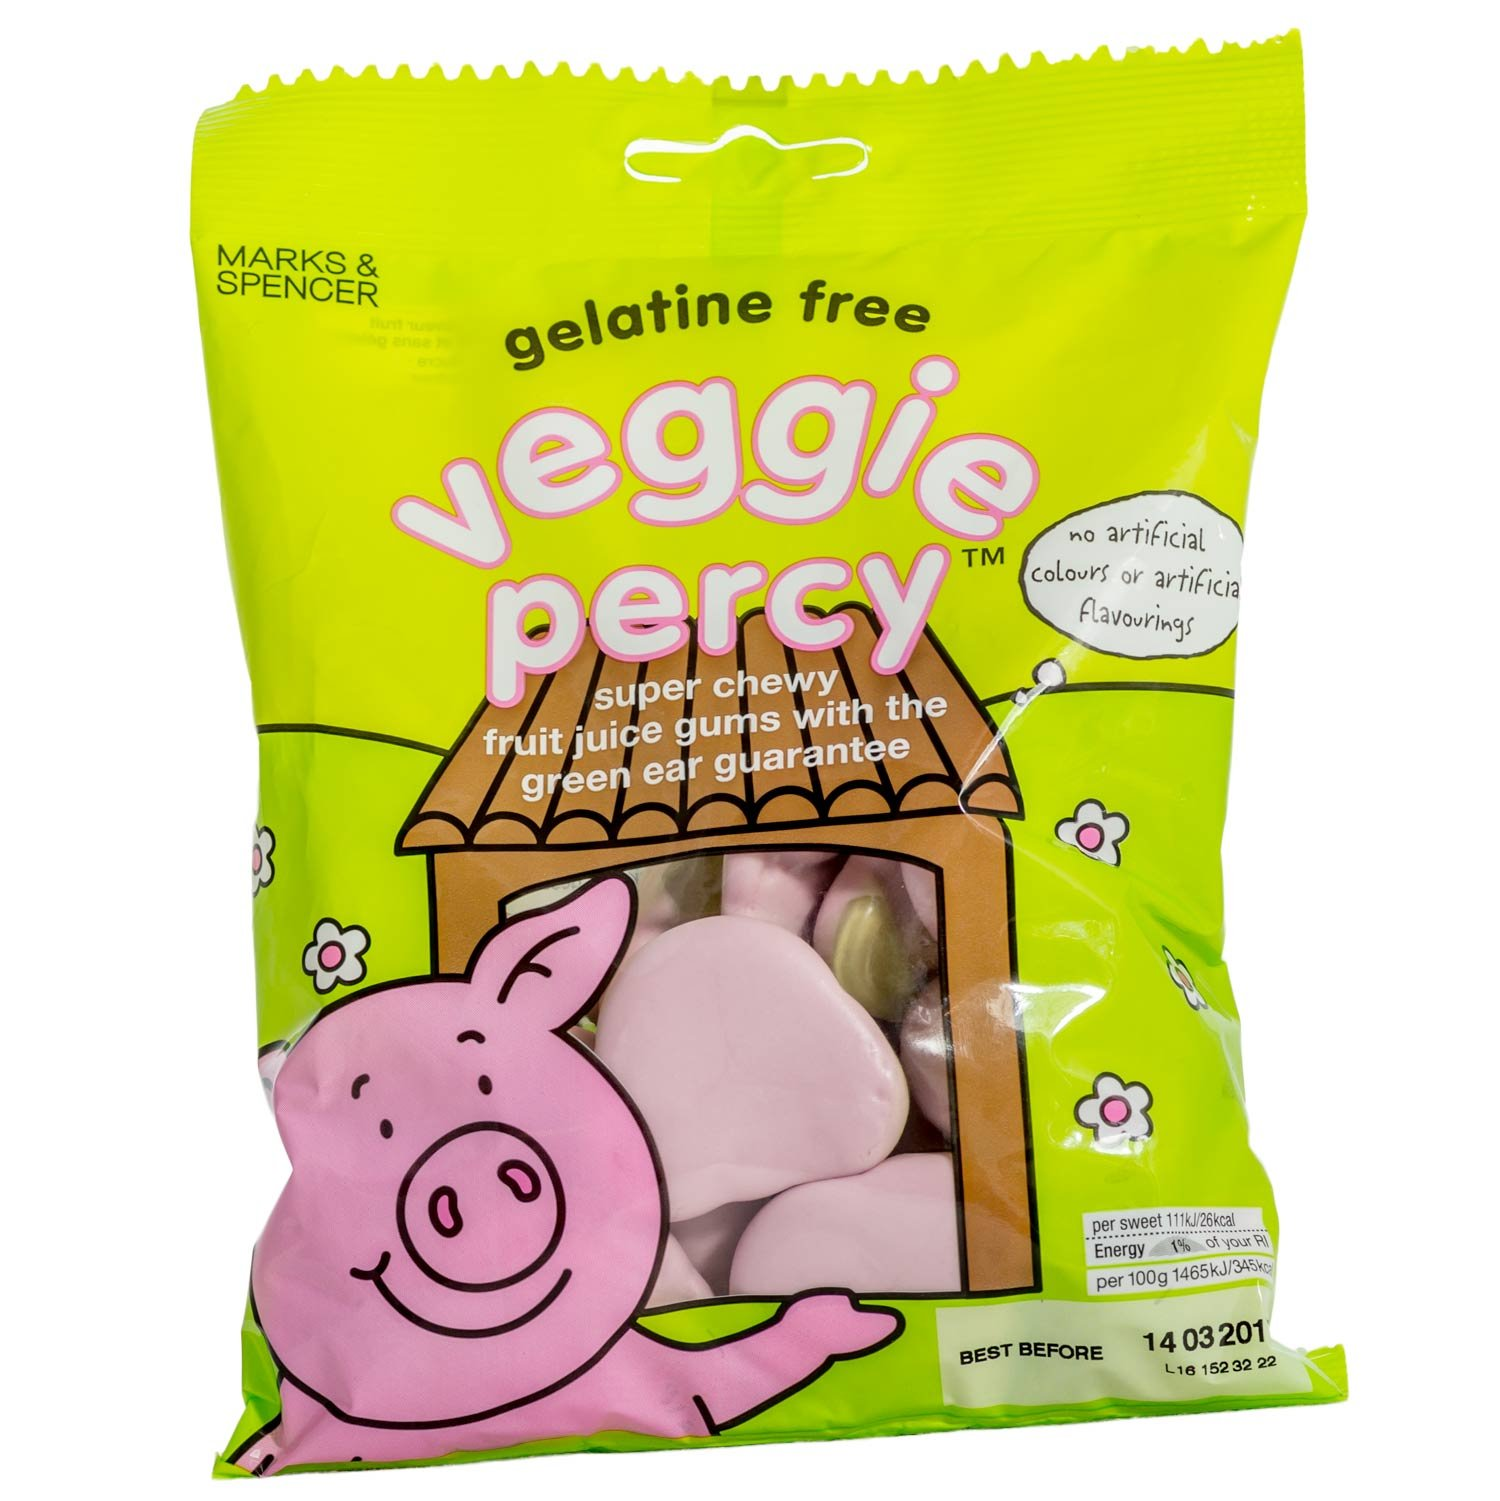 Marks & Spencer | Percy Pigs - Veggie Percy | 2 x 170g Bag